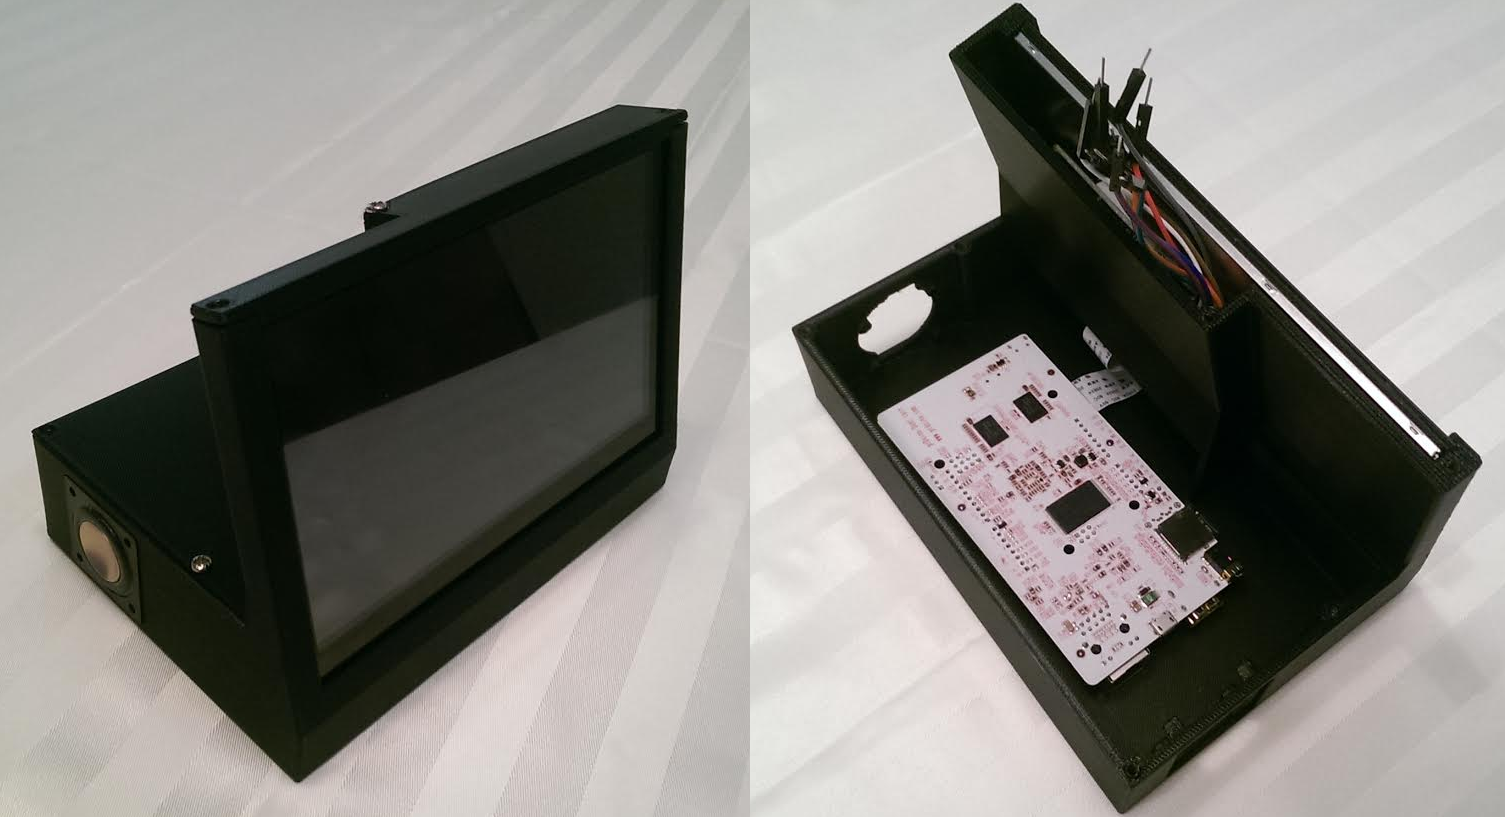 A customer-designed case for an Alarm Clock, designed and built from scratch.